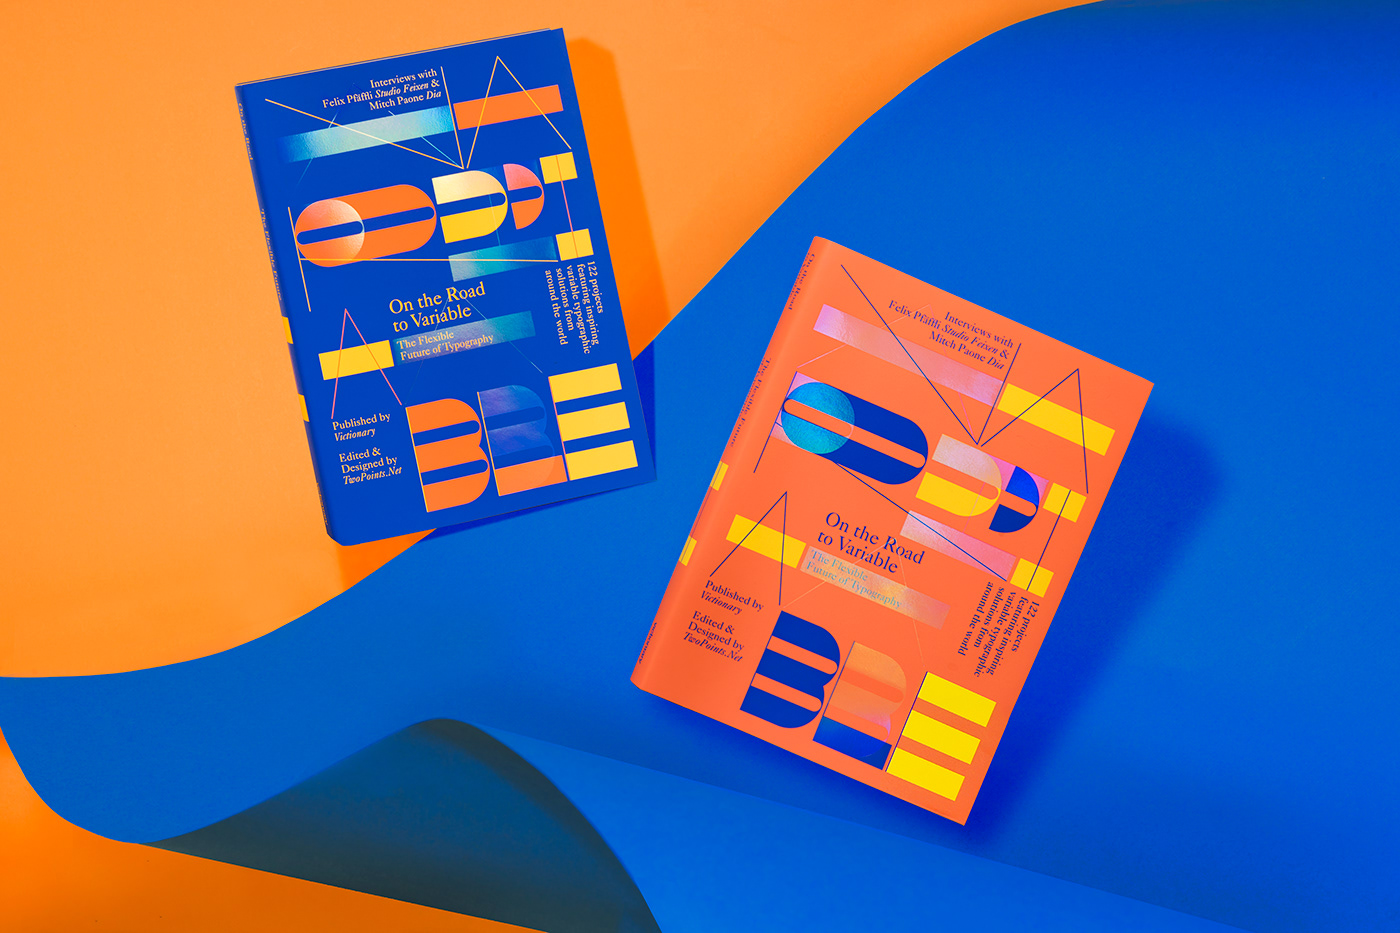 Two books against an orange and blue background